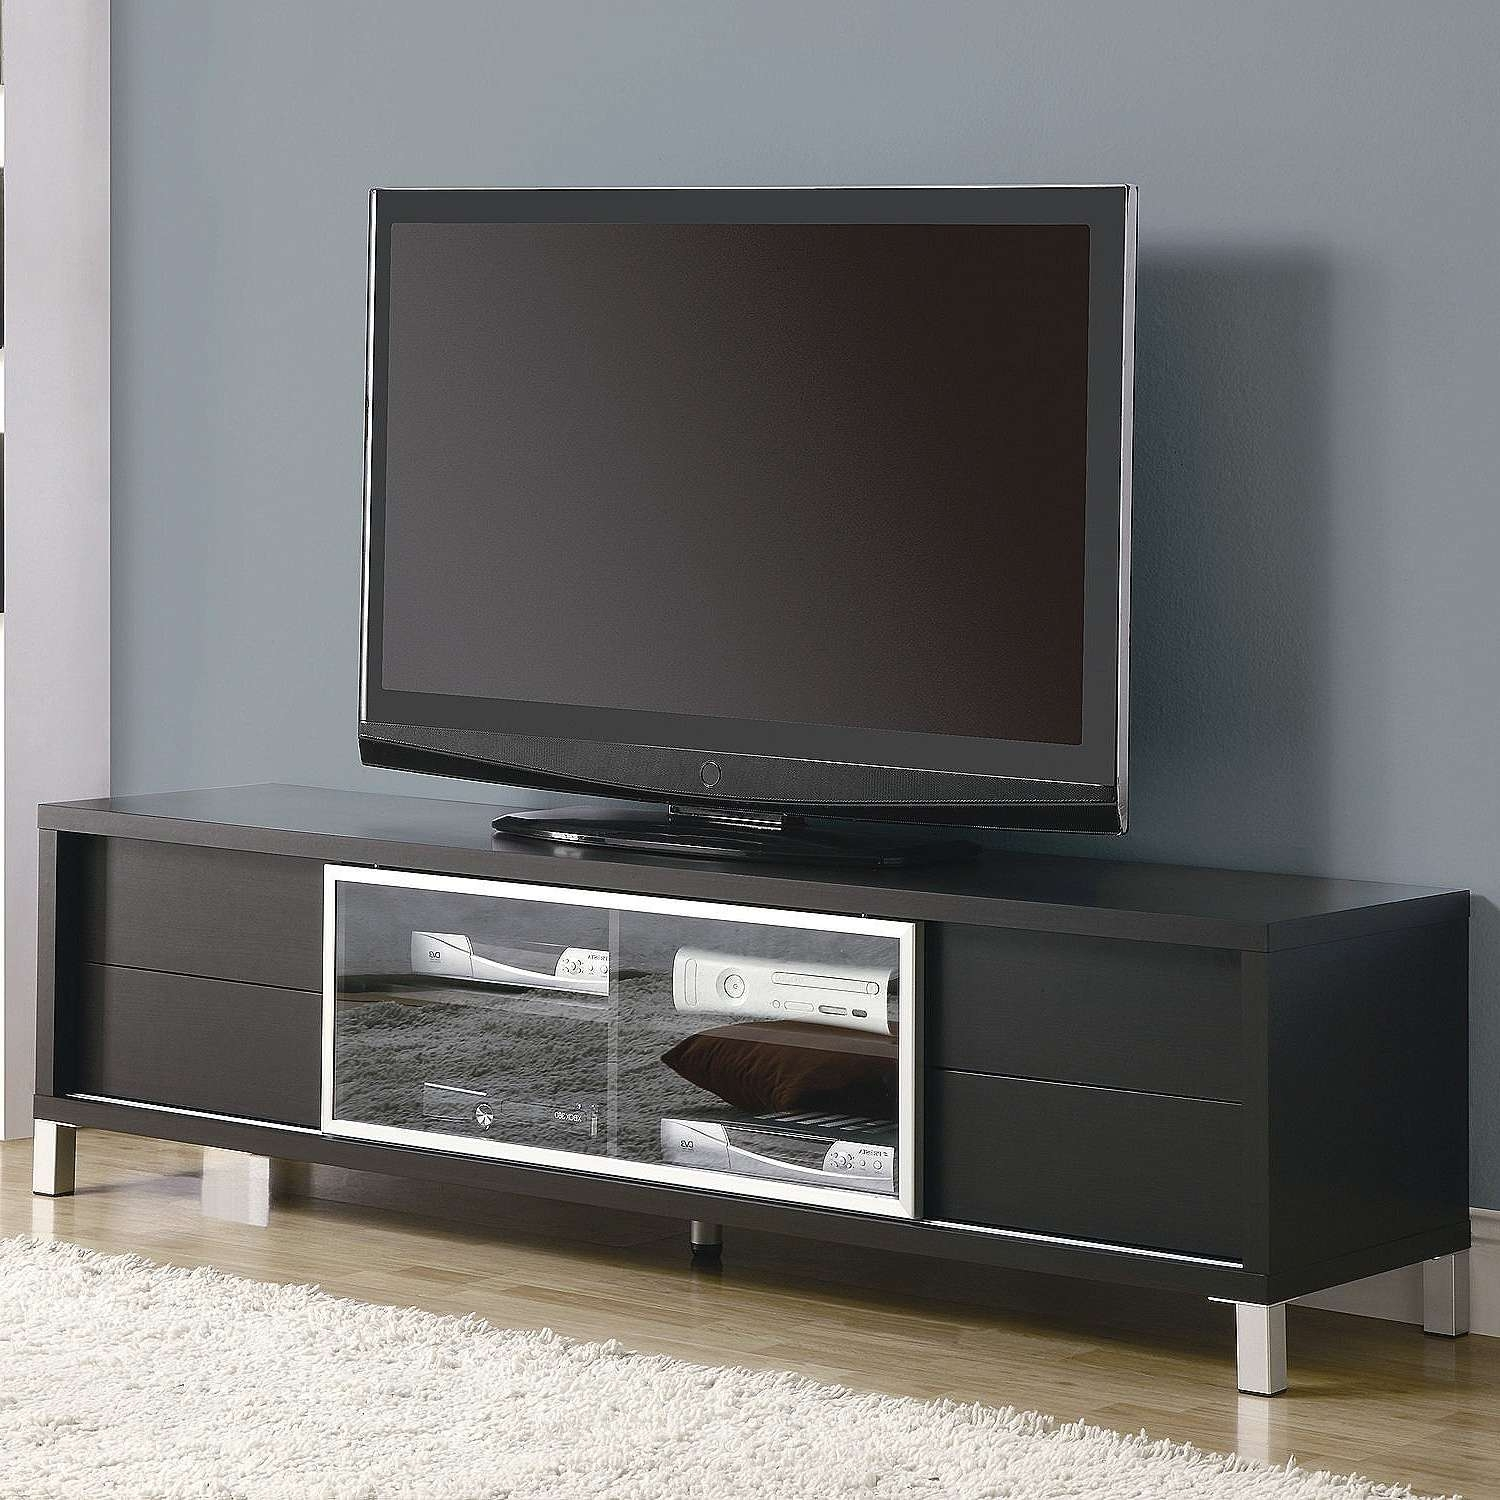 Picture 37 Of 39 – Luxury Tv Stands Lovely Simple Black Led Tv Regarding Unusual Tv Stands (View 5 of 15)